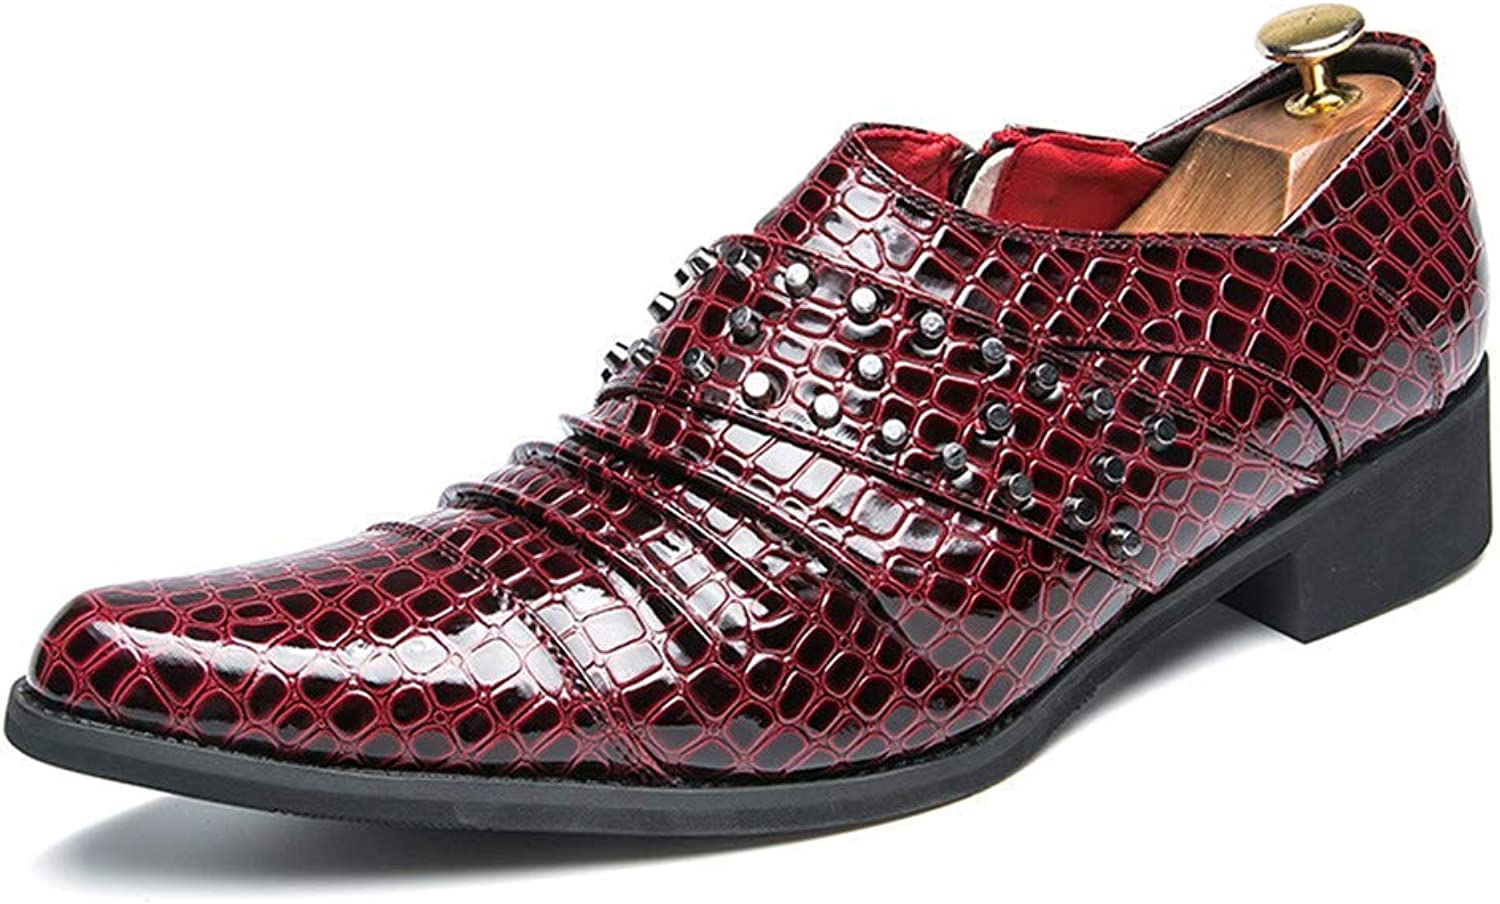 2018 Men Business Oxford Casual Personalized Rivet Fashion Anke Pattern Formal shoes (color  Red, Size  38 EU) (color   Red, Size   41 EU)